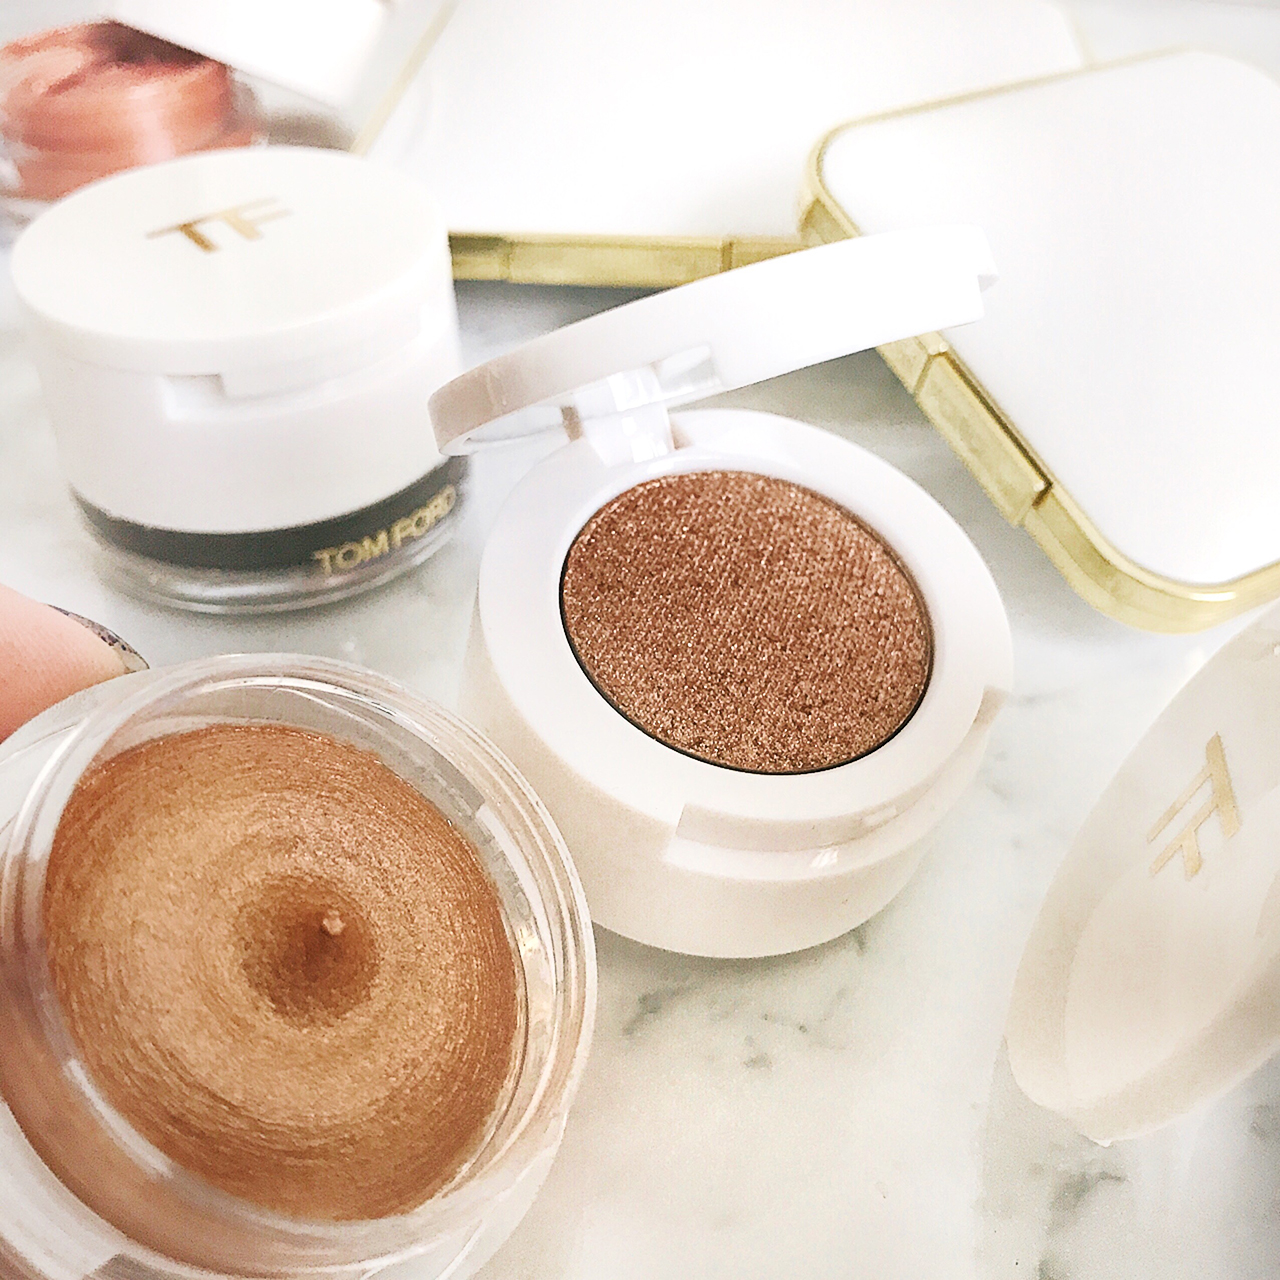 Tom Ford Sun Worship Cream & Powder Eye Color